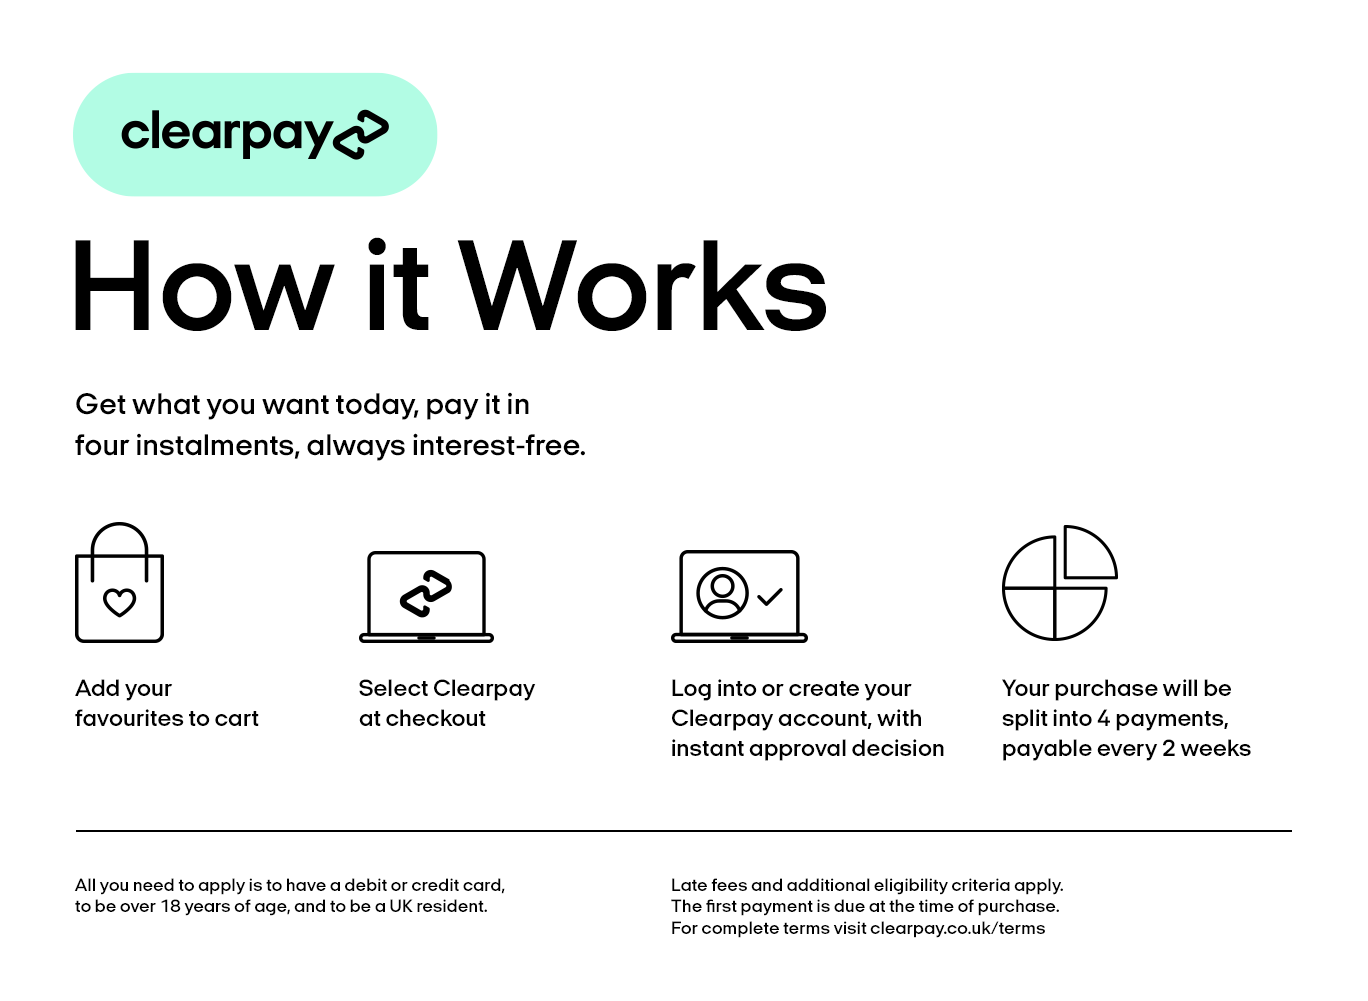 clearpay-uk-howitworks-desktop-white-1x.png